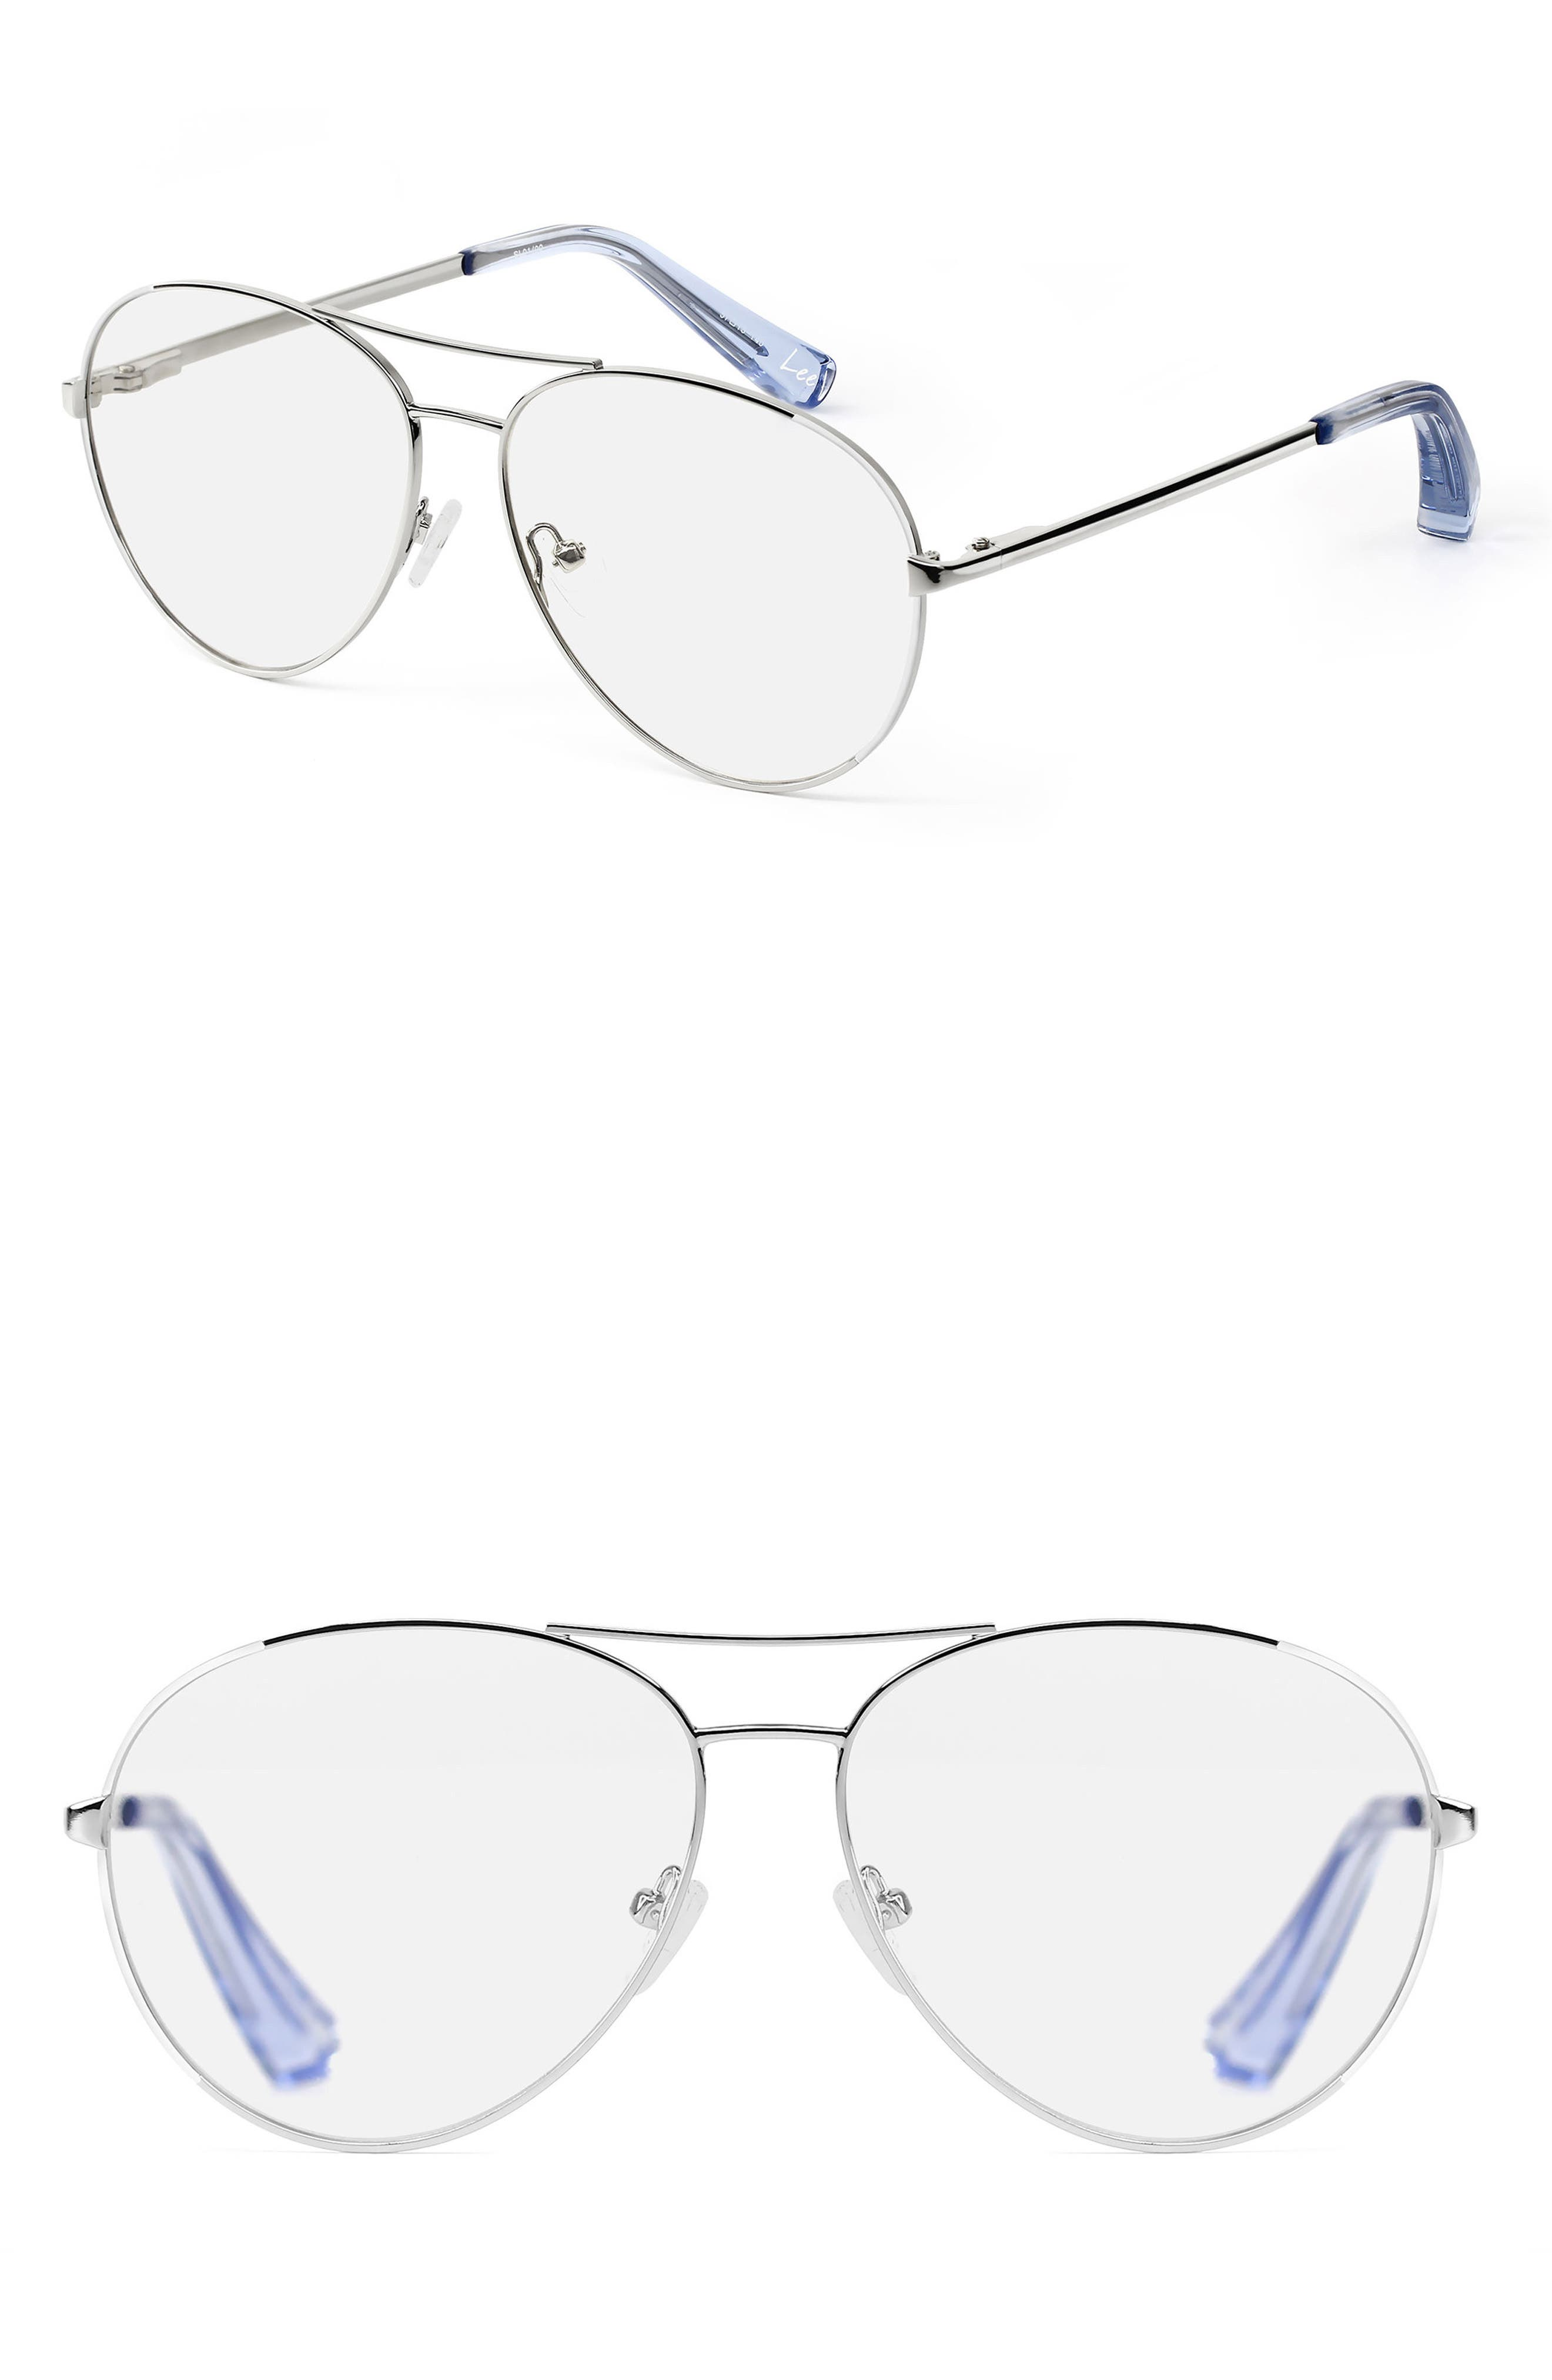 Lee 57mm Aviator Optical Glasses,                         Main,                         color, 040